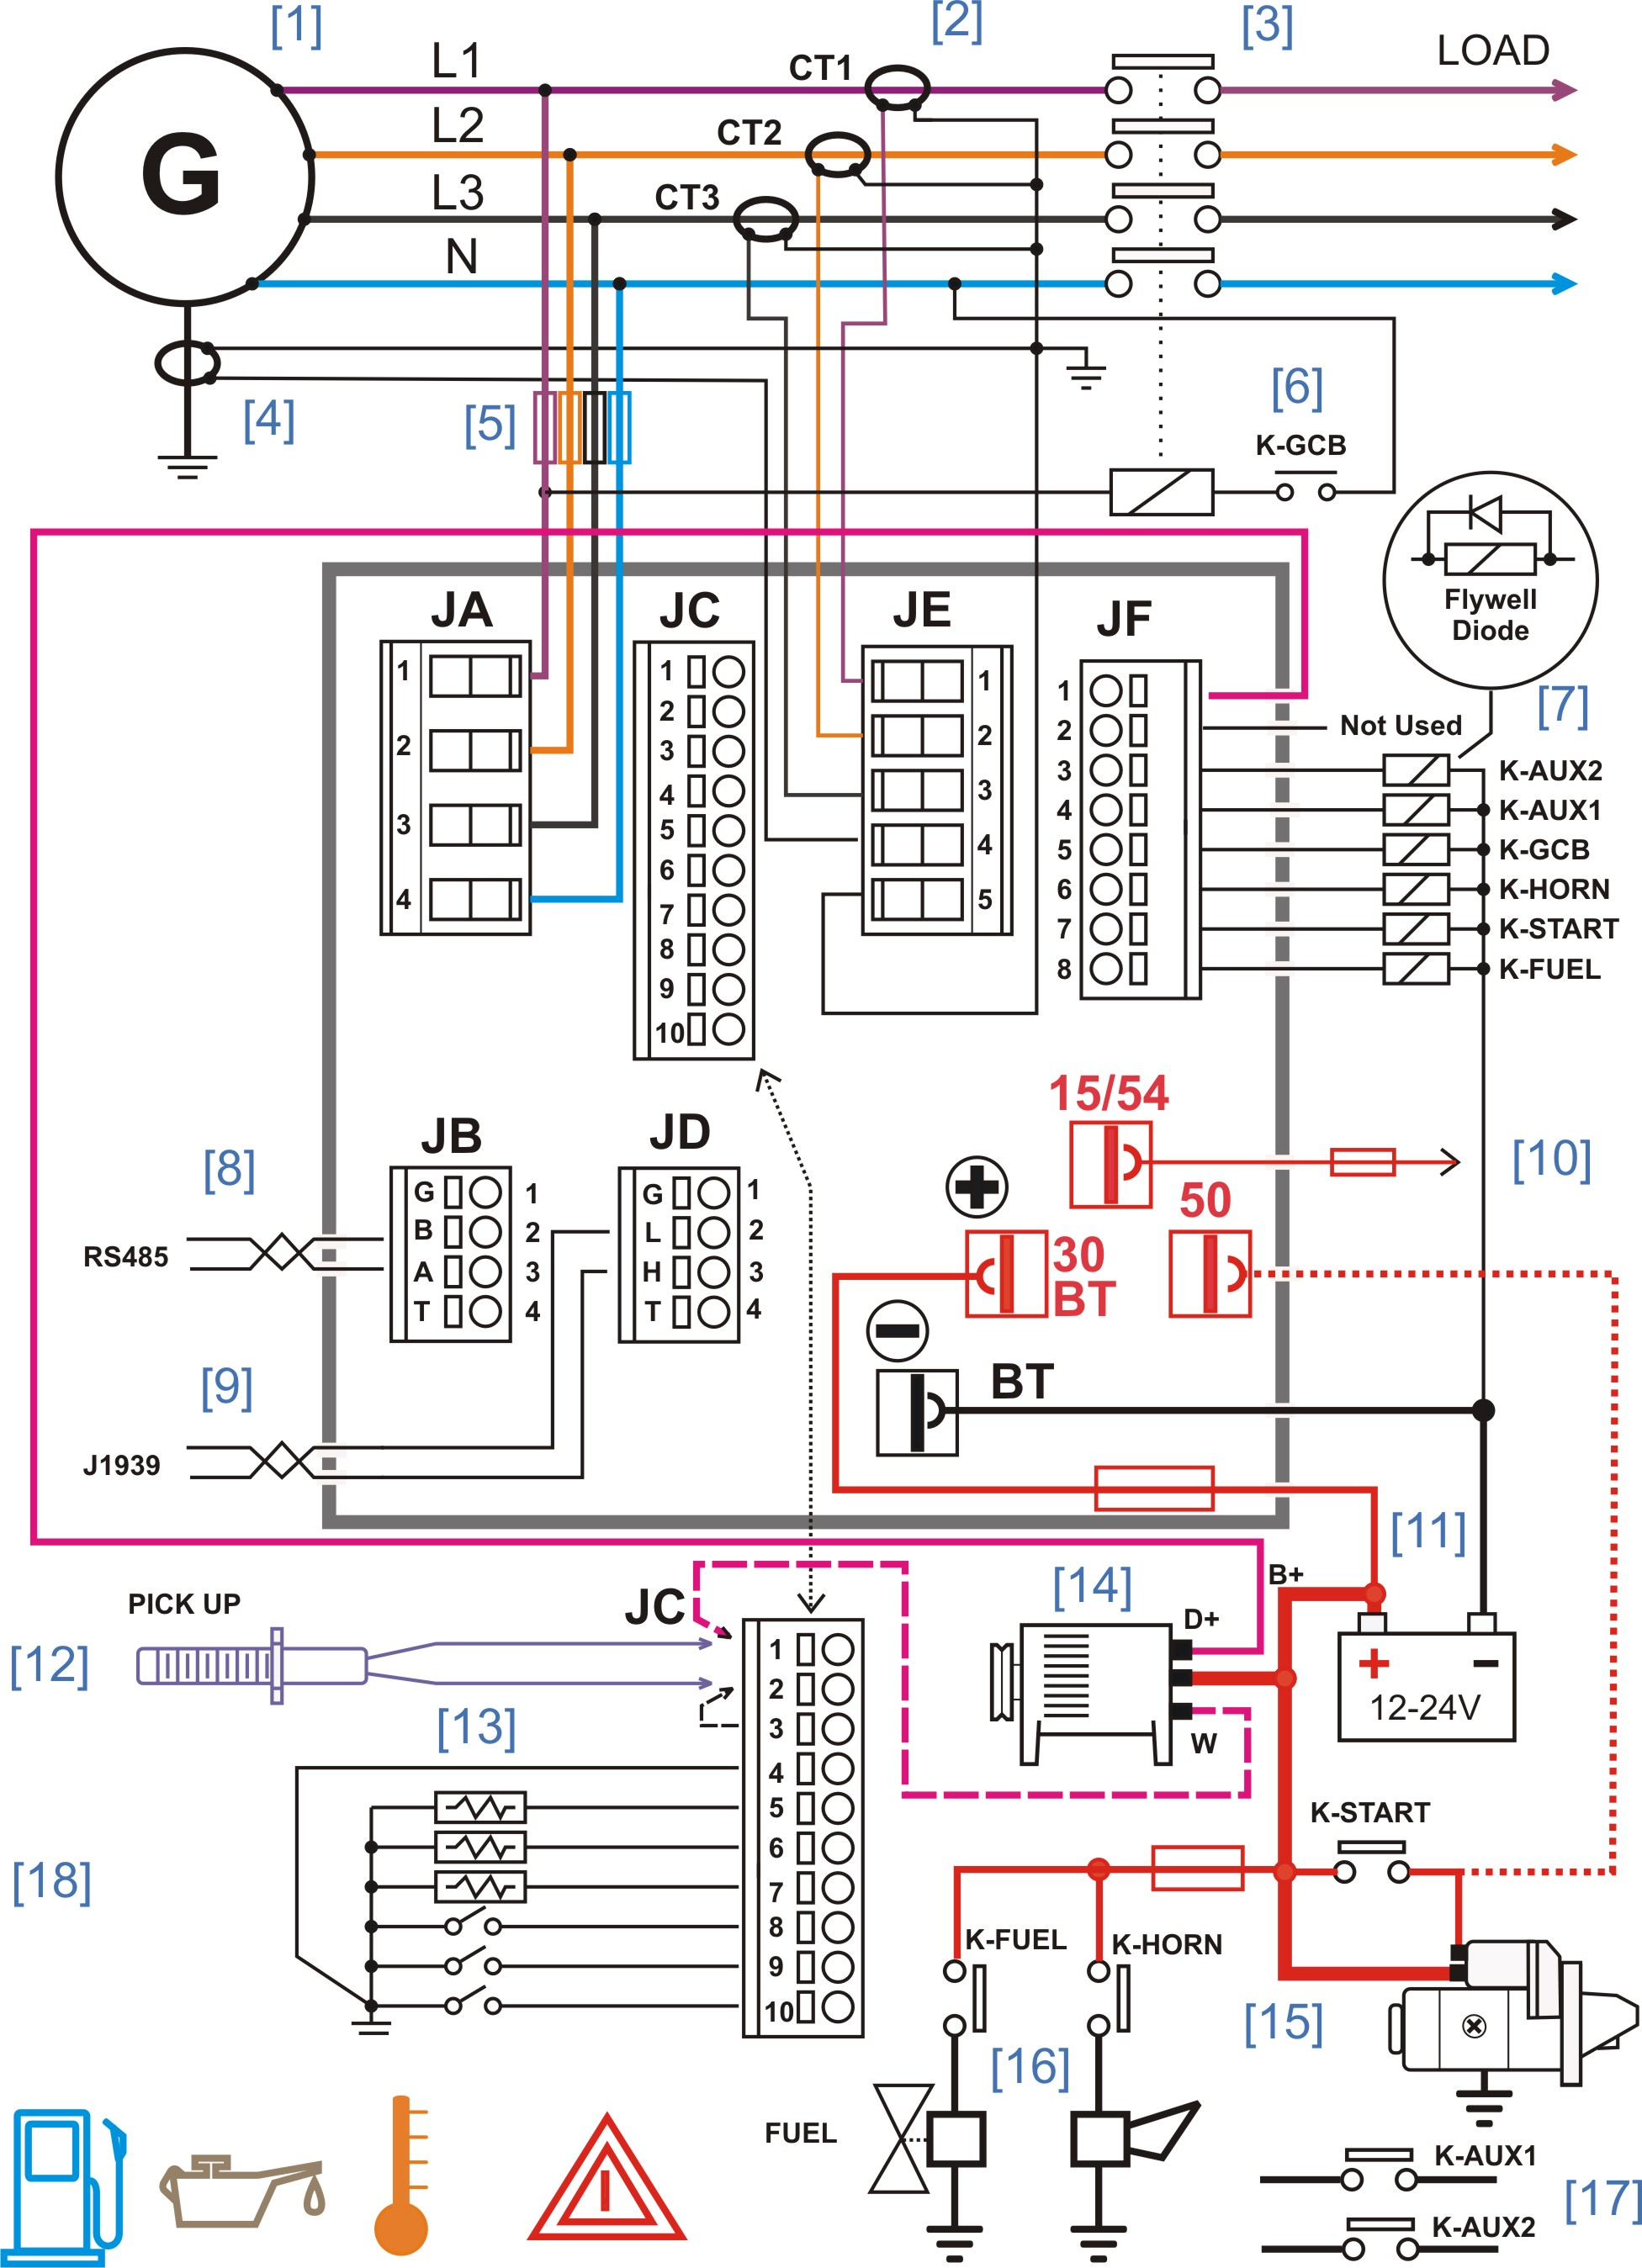 Diesel Generator Control Panel Wiring Diagram ats wiring diagram ats panel wiring diagram \u2022 wiring diagram  at pacquiaovsvargaslive.co